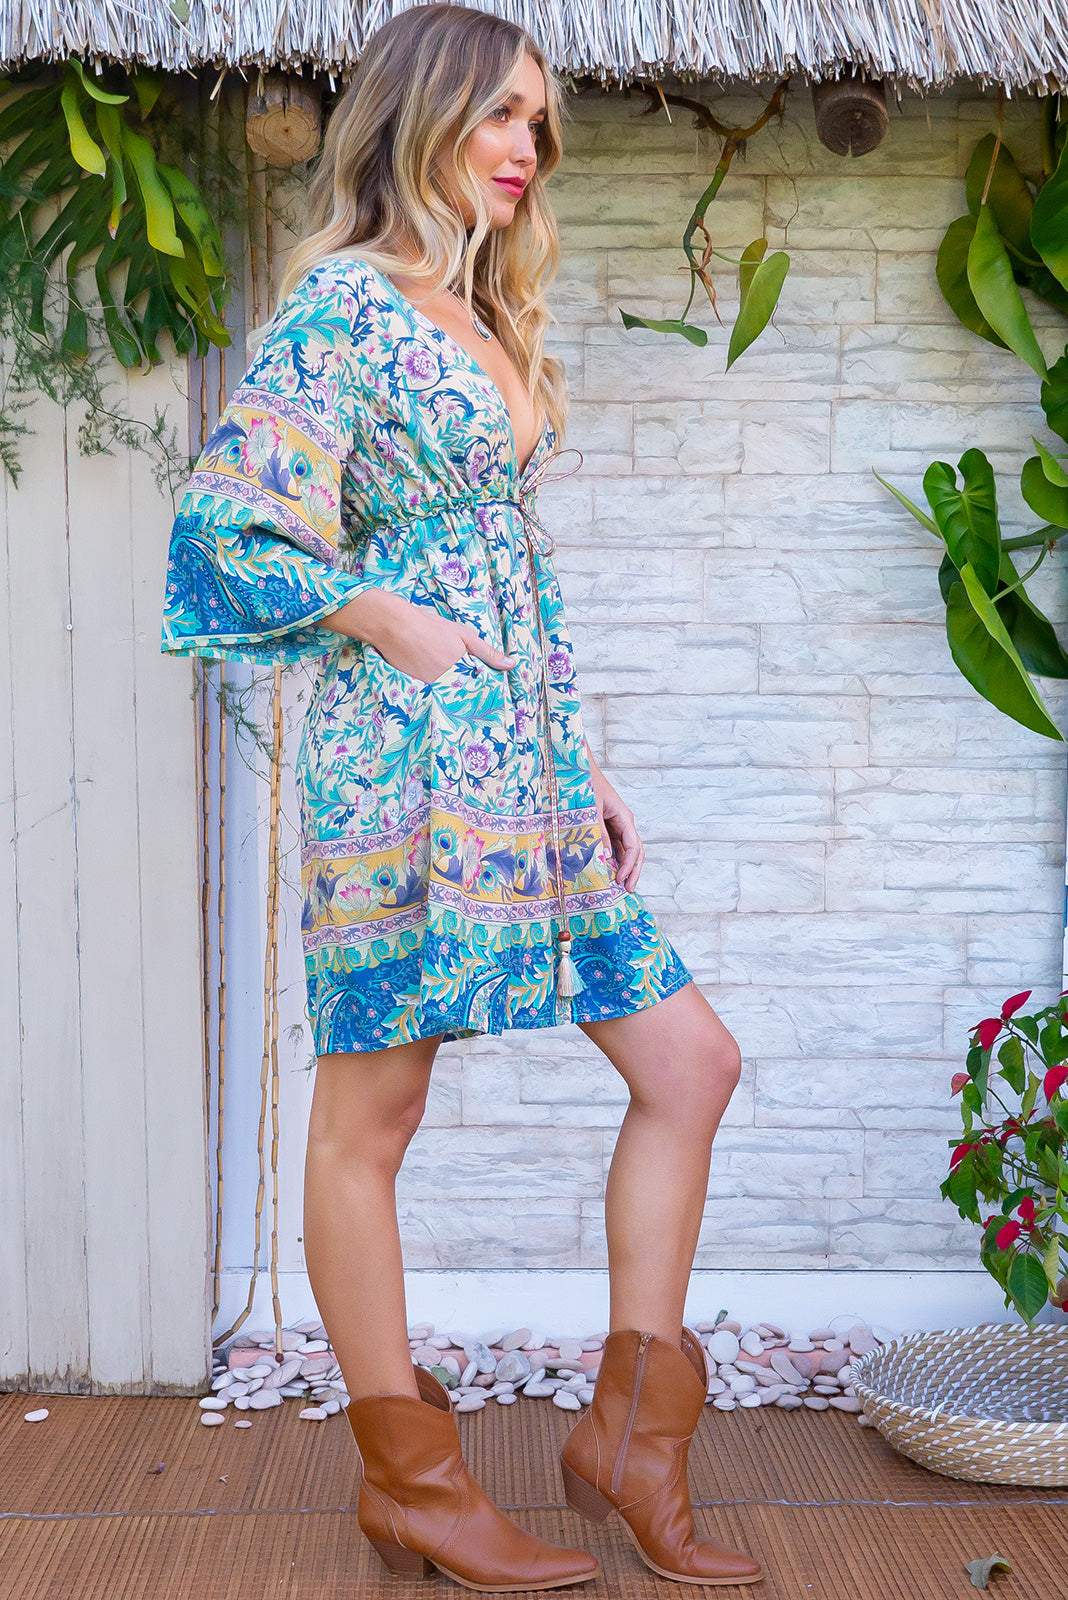 Layla Camelot Cream and mint Dress made from lightweight rayon, women's tunic bohemian beachy style loose knee length dress is feeding friendly.